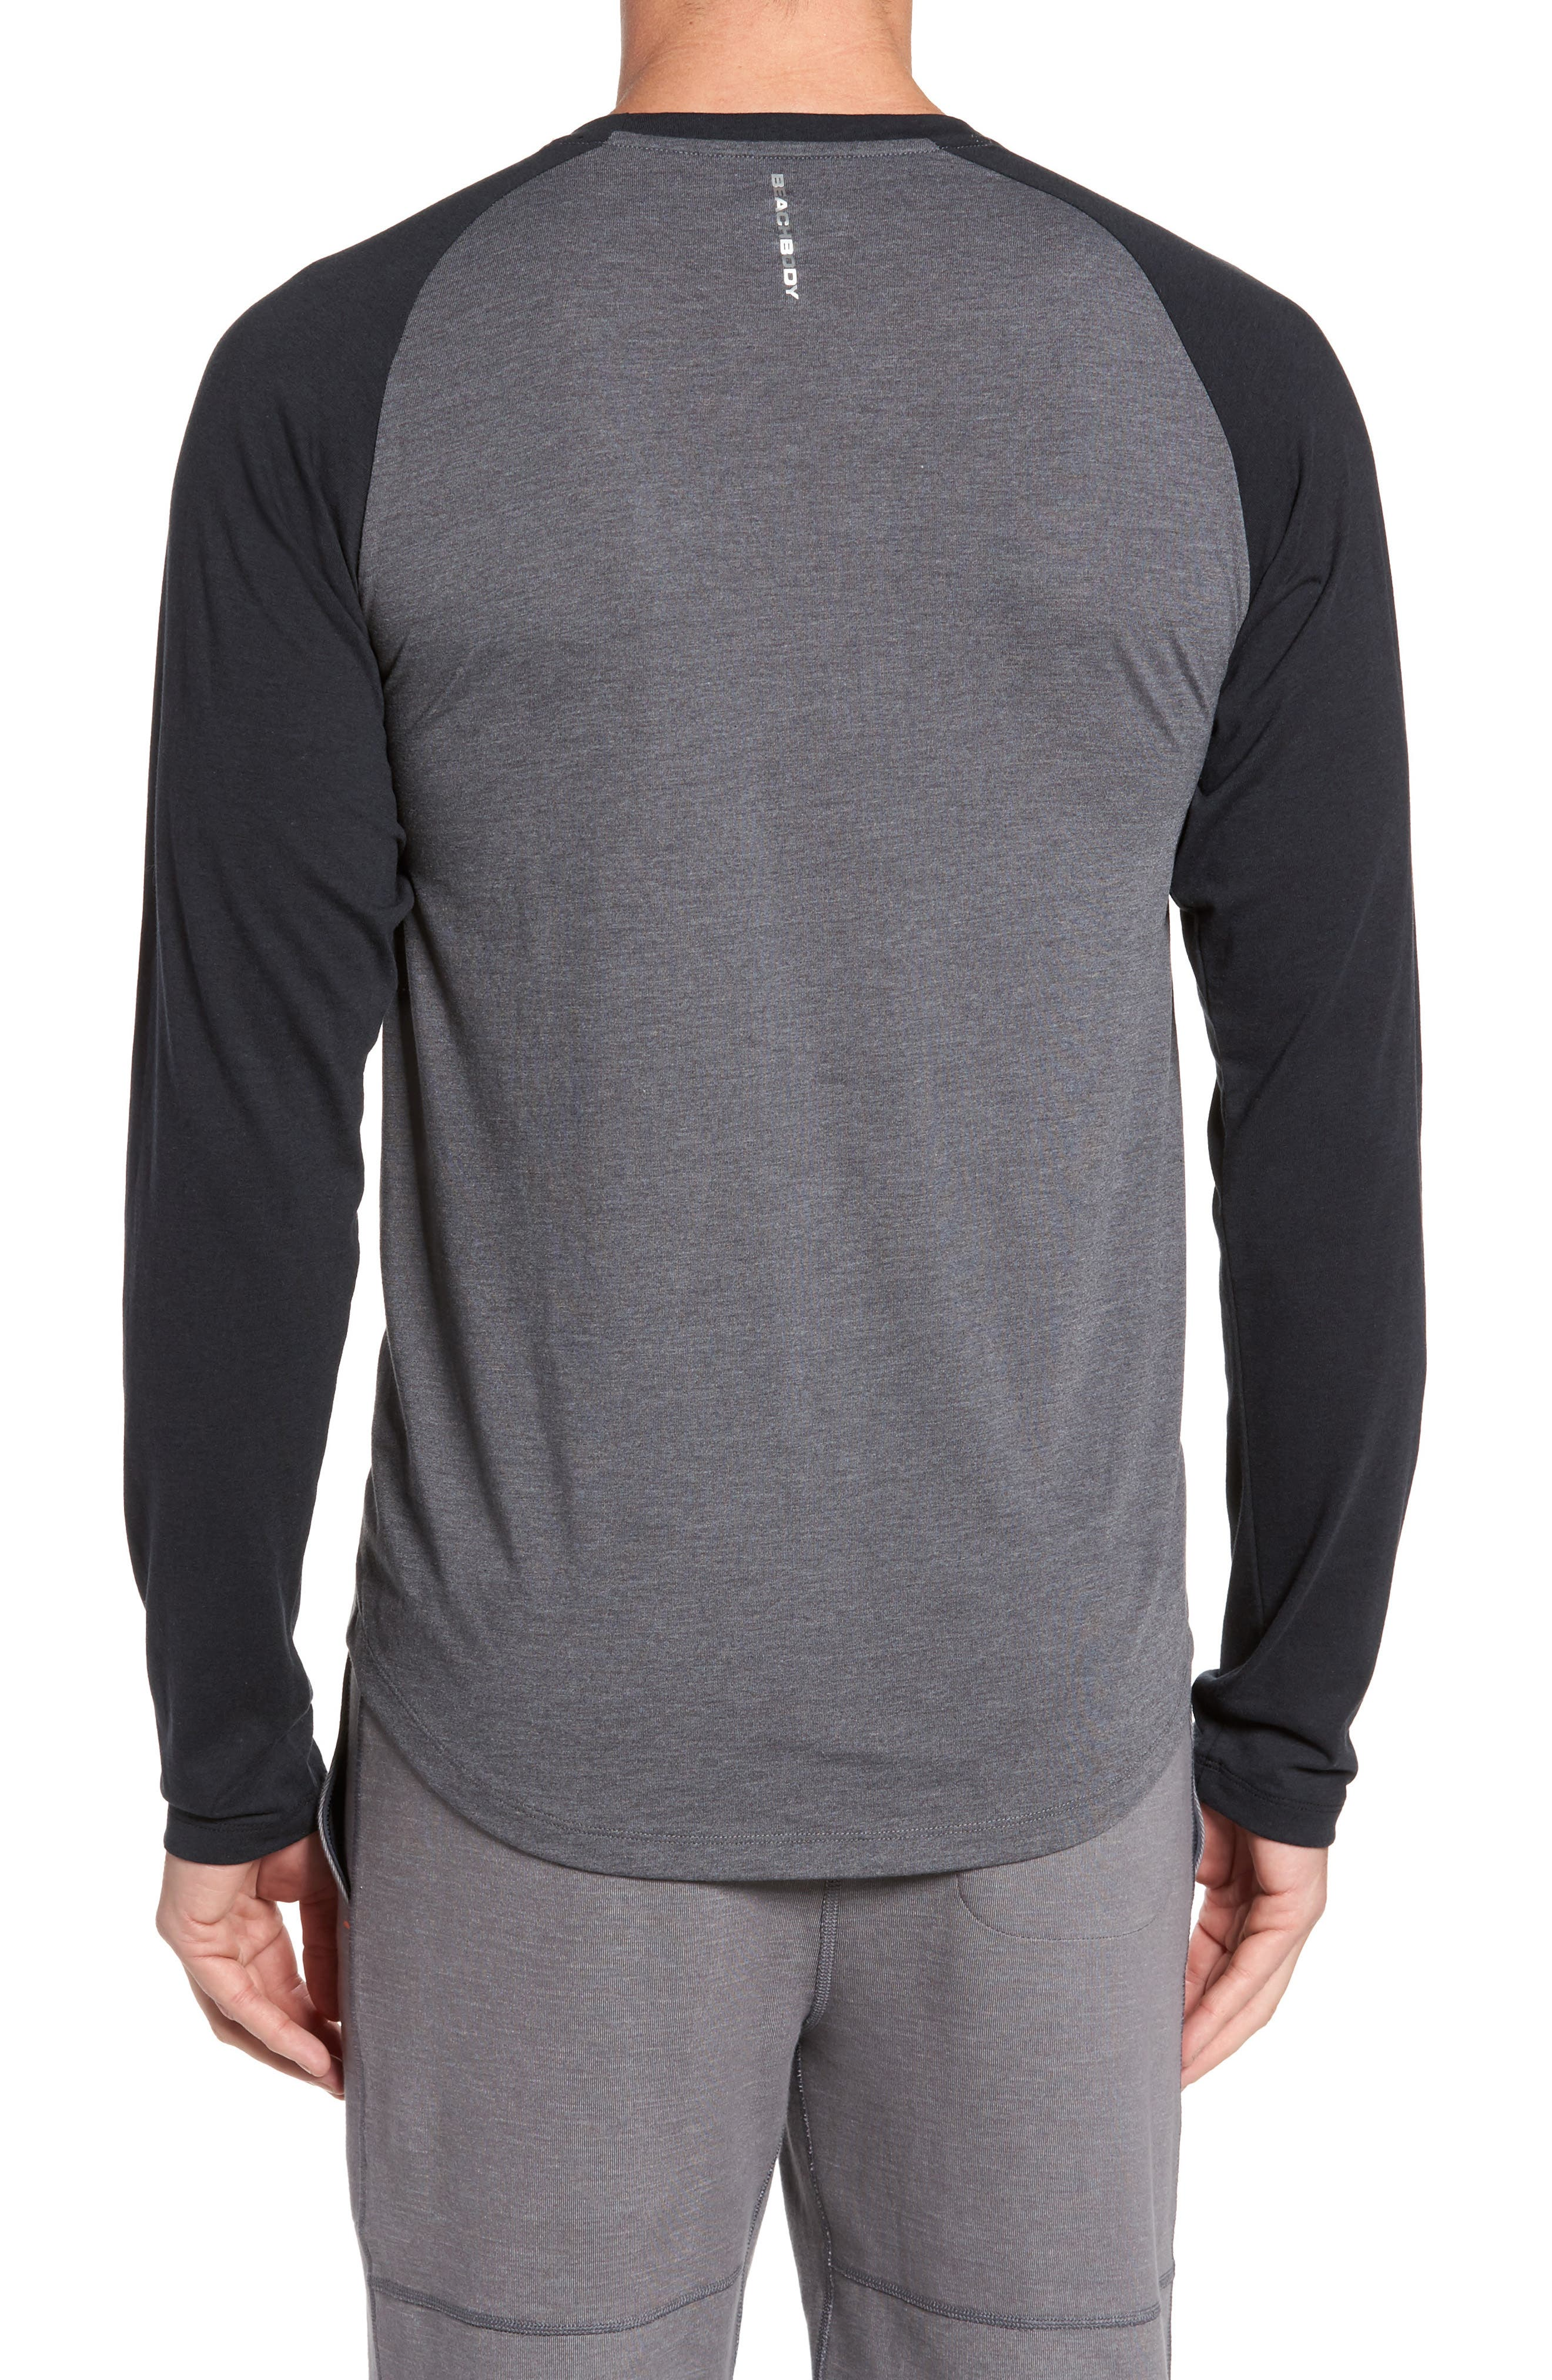 Go-To Infinity Long Sleeve T-Shirt,                             Alternate thumbnail 2, color,                             020